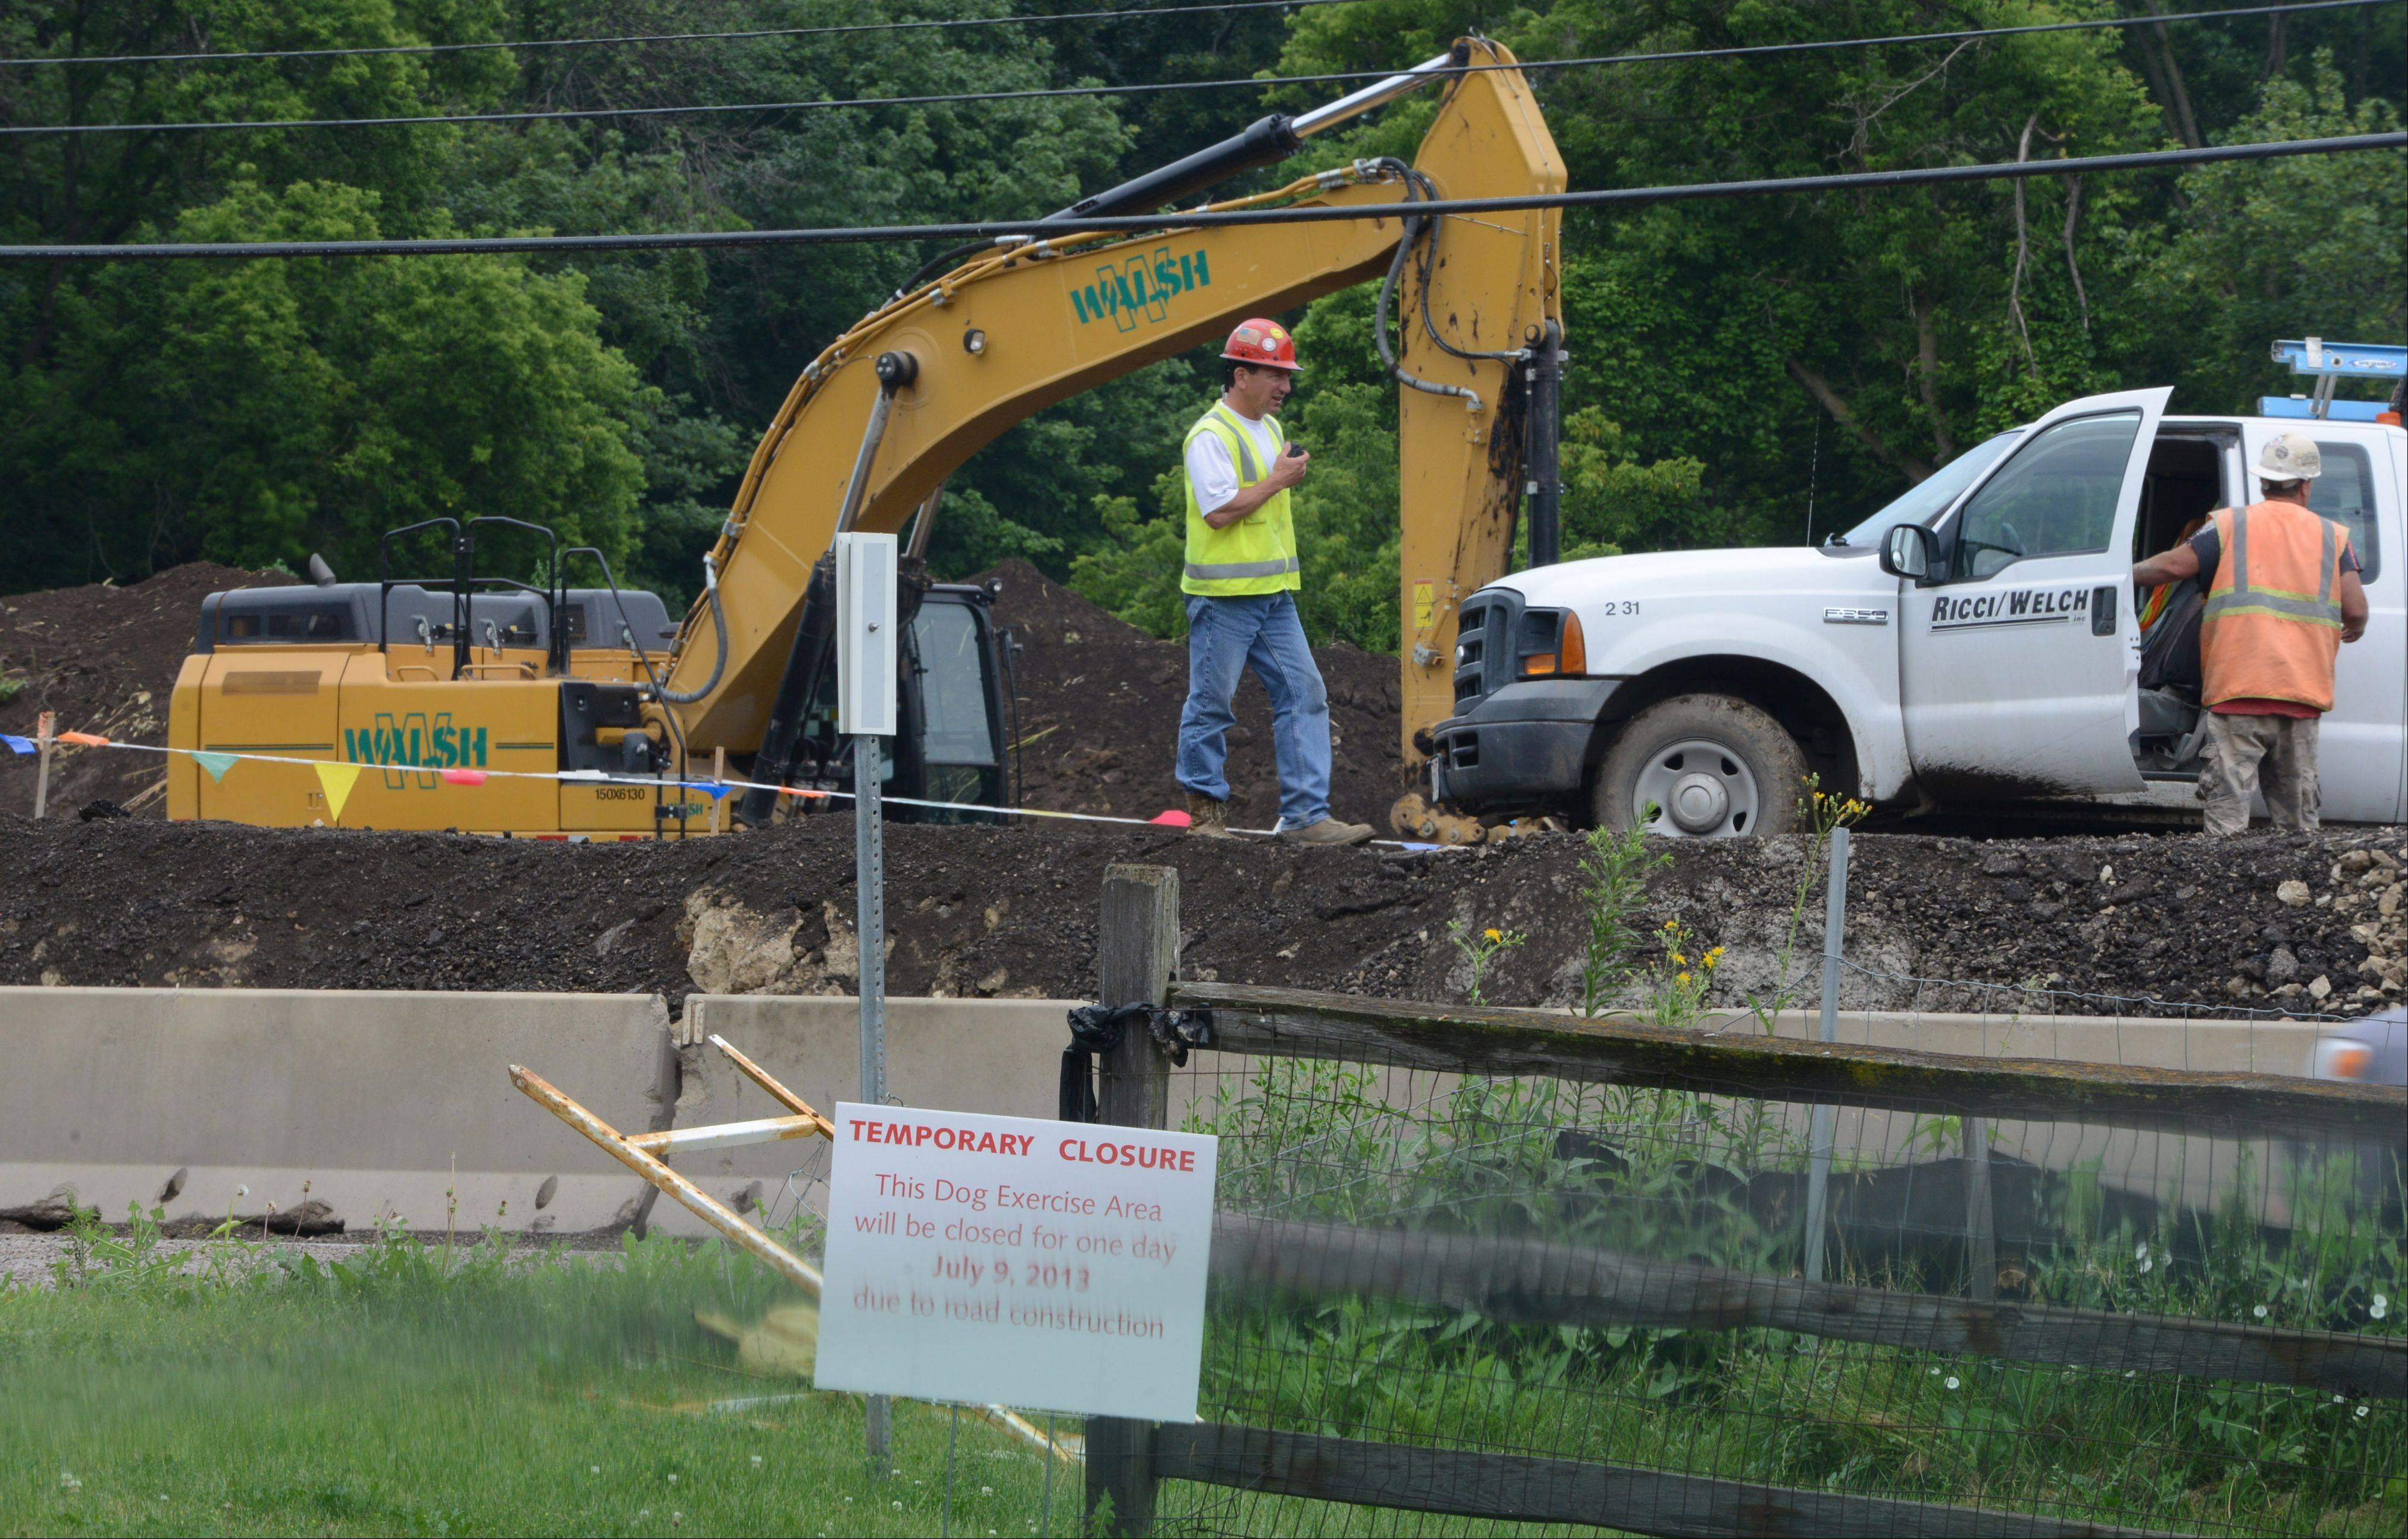 The dog facility at the Independence Grove Forest Preserve near Libertyville will be closed Wednesday as crews unload and install concrete sections of a pedestrian tunnel to run beneath Milwaukee Avenue. The tunnels are part of a $23 million widening of Milwaukee Avenue.